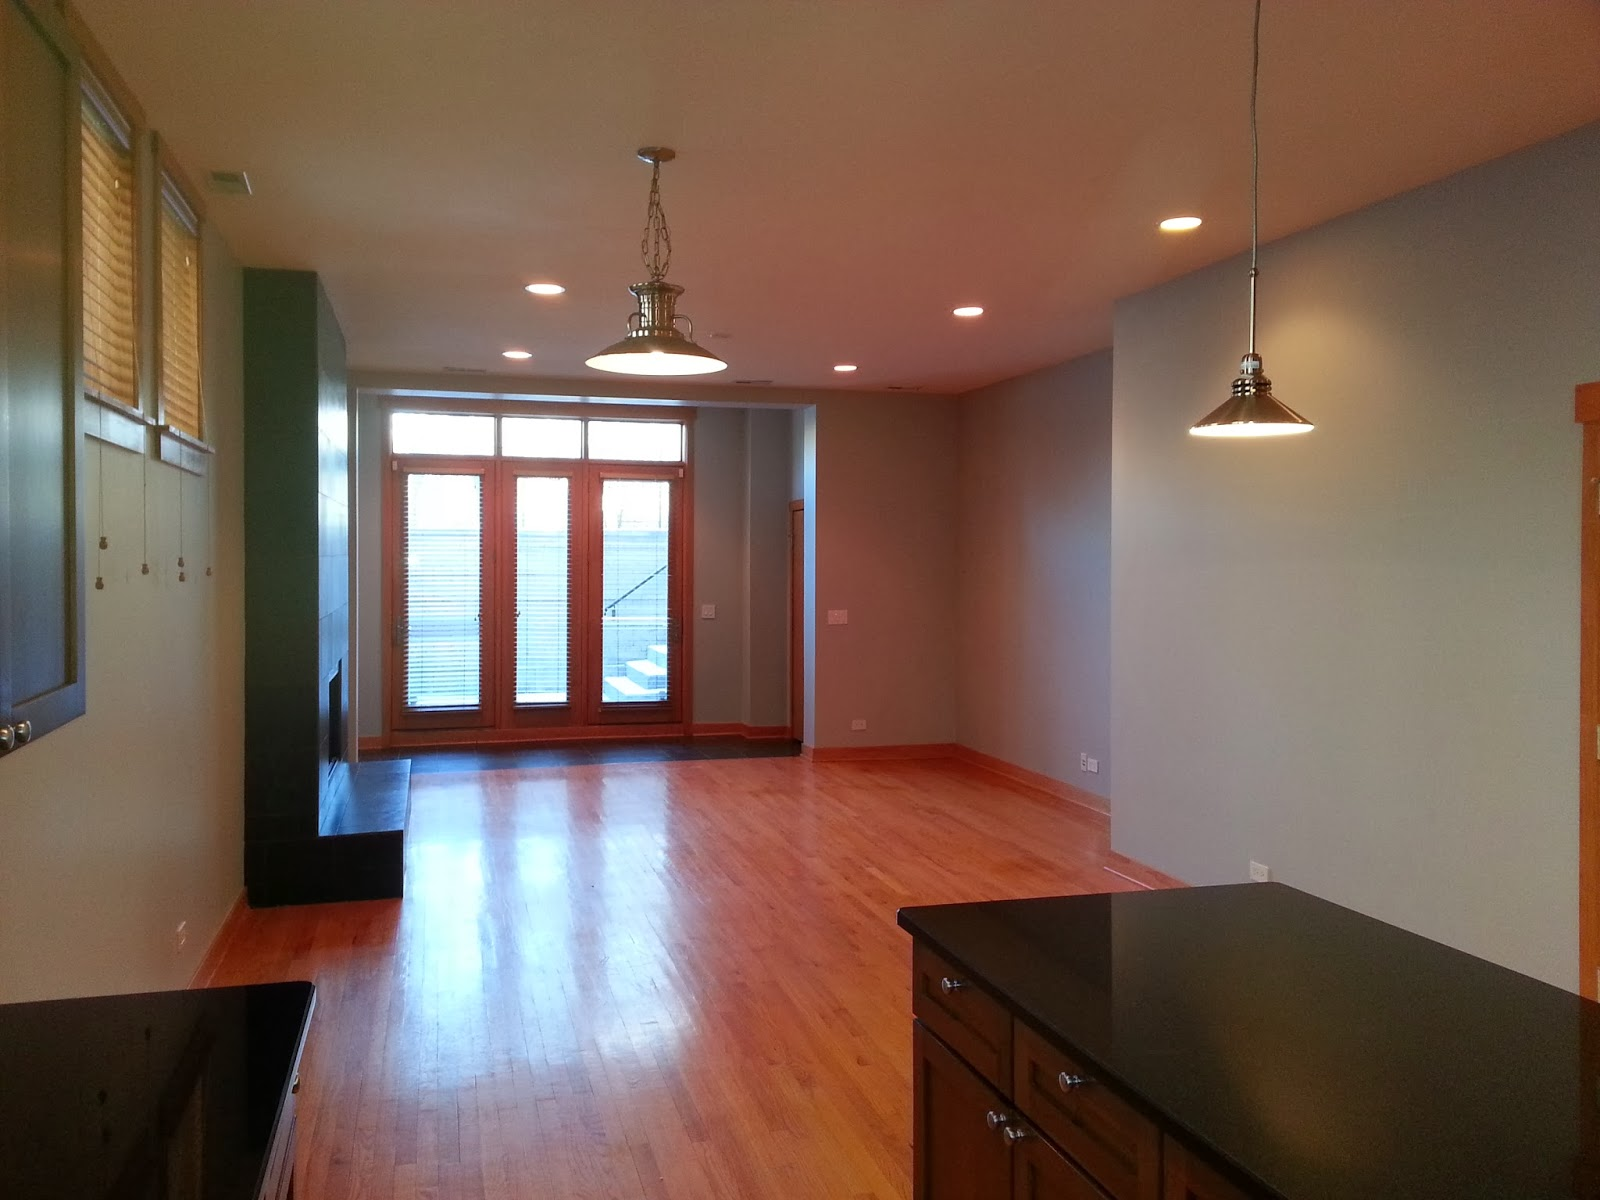 The Chicago Real Estate Local New For Sale Spacious Three Bedroom Logan Square Condo On The